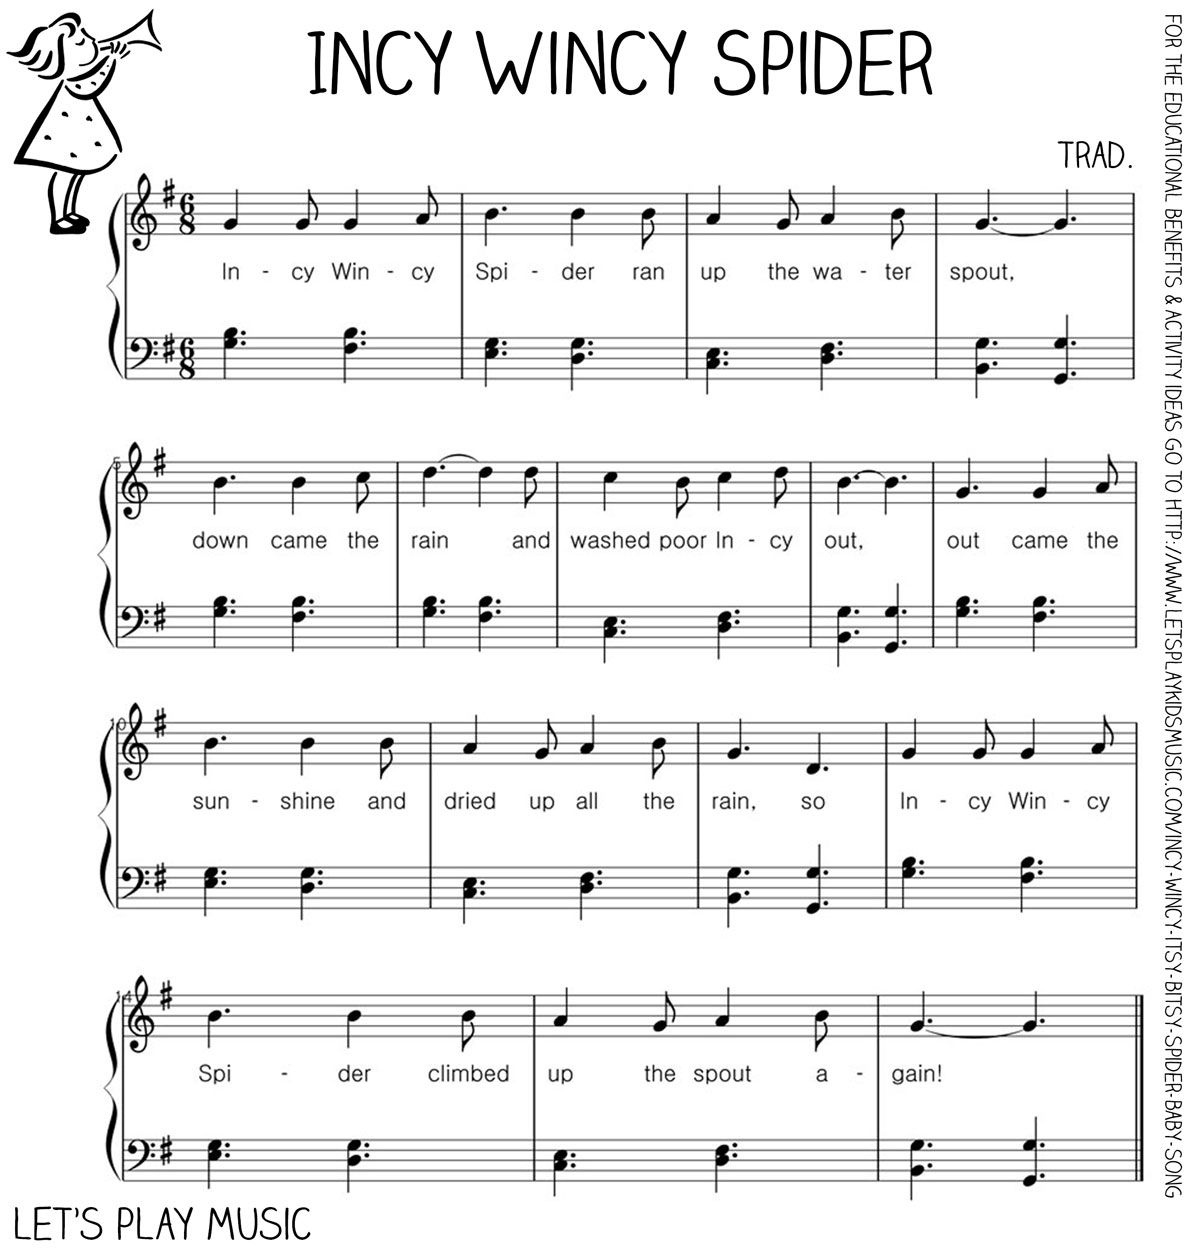 Sheet Music Template Violinlessonsforkids: Incy Wincy Spider : First Nursery Rhymes